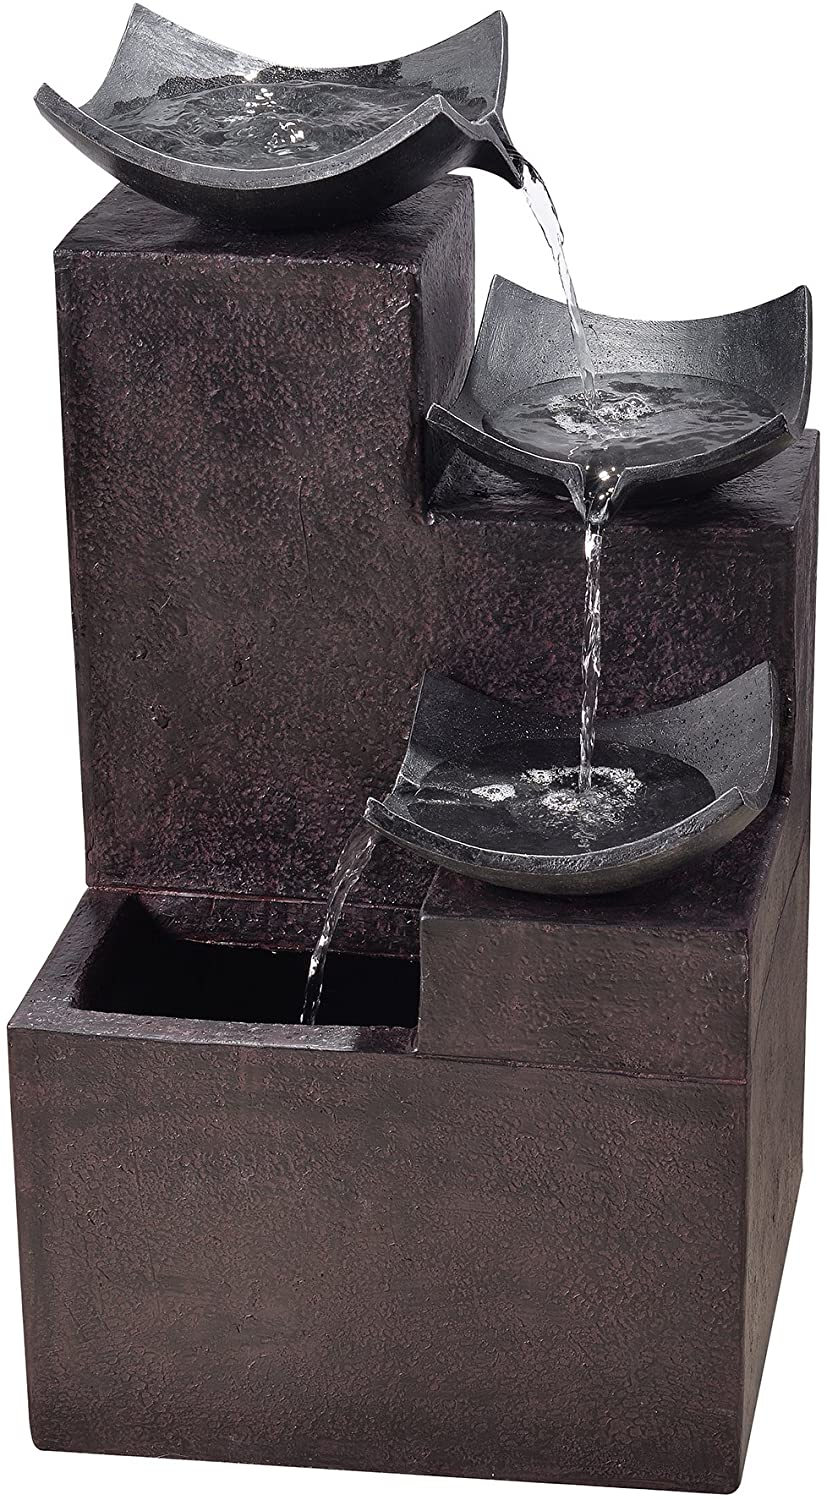 "Peaktop Outdoor Garden Tiered Modern Zen Fountain, 29"" Height, Dark Gray"